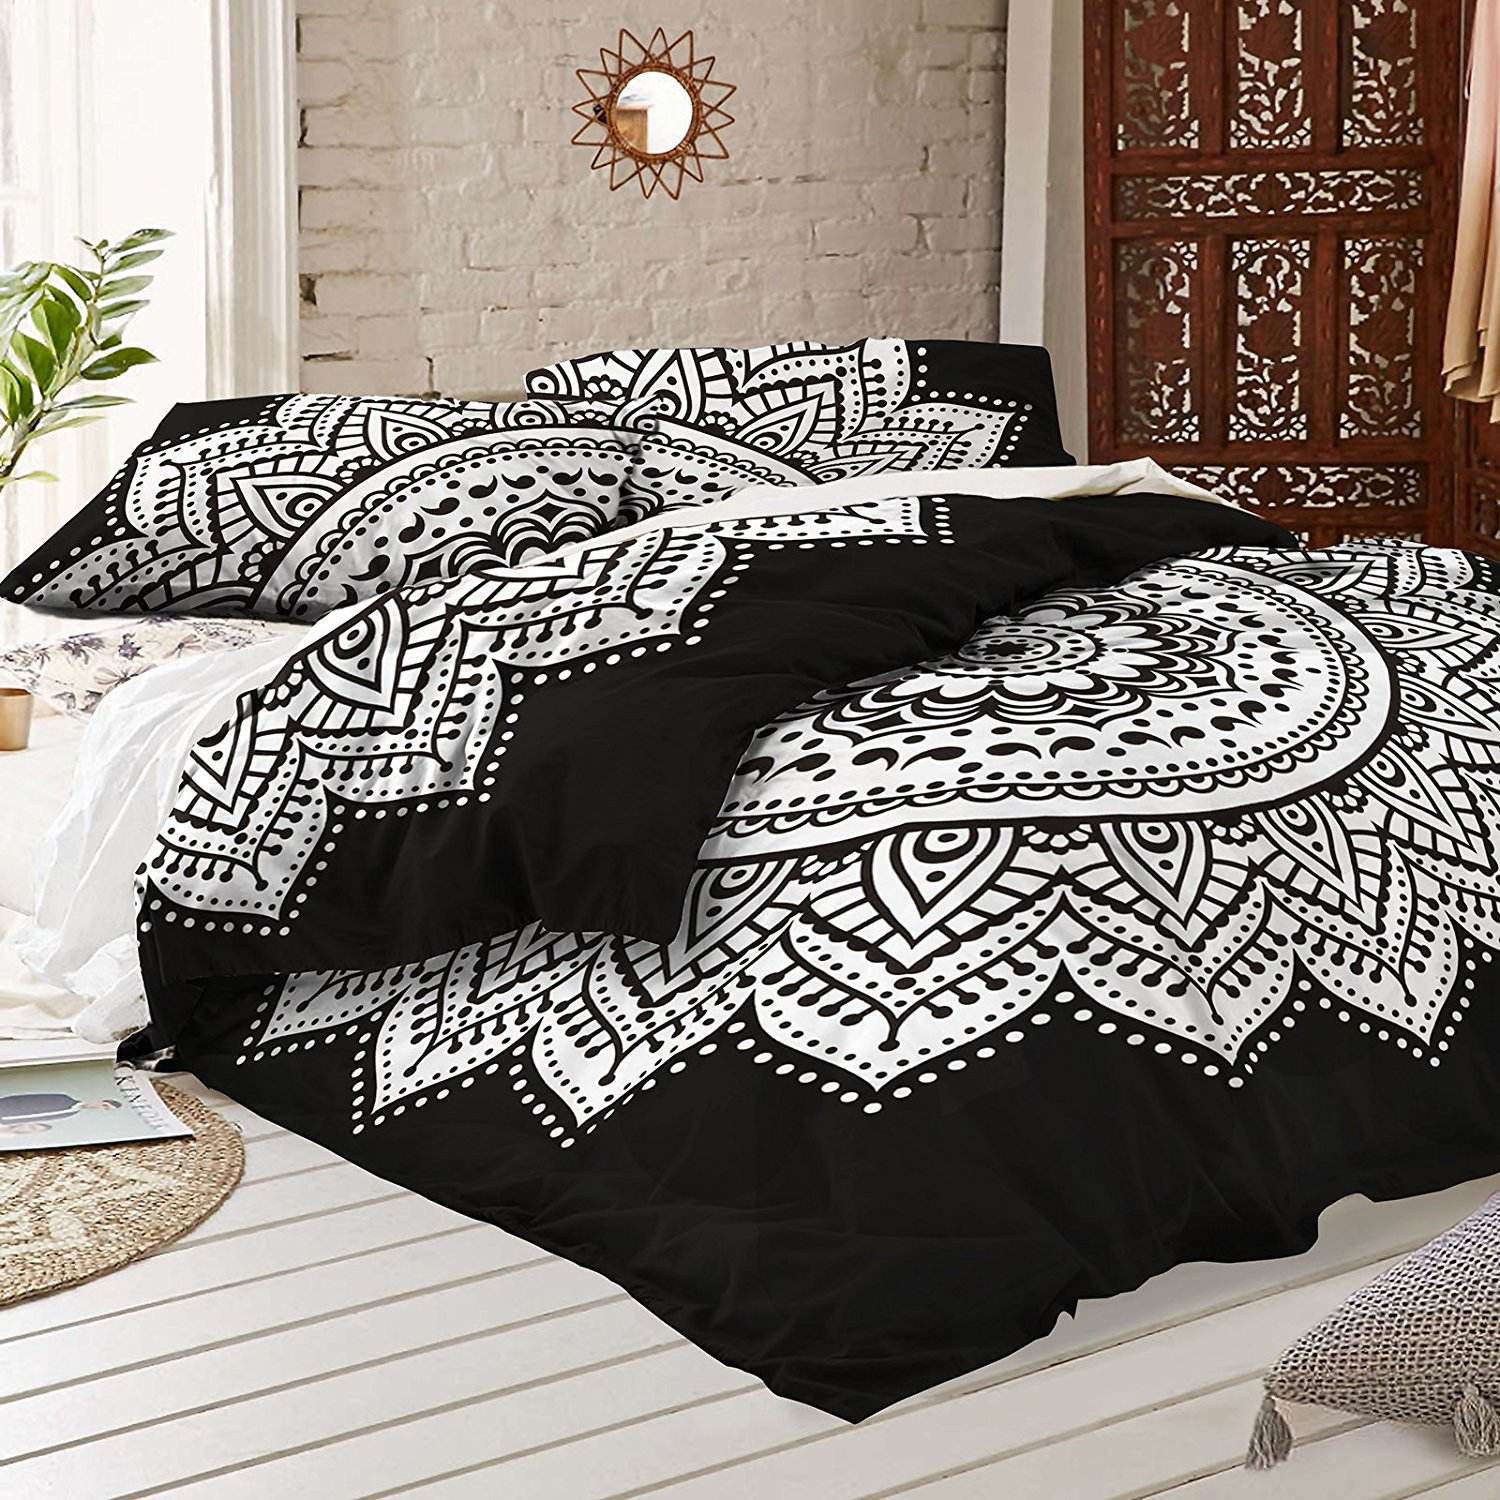 Black and white Mandala Duvet Cover With Two Pillow Covers - Bohemian Doona set- Indian Reversible Quilt Cover By RawyalCrafts